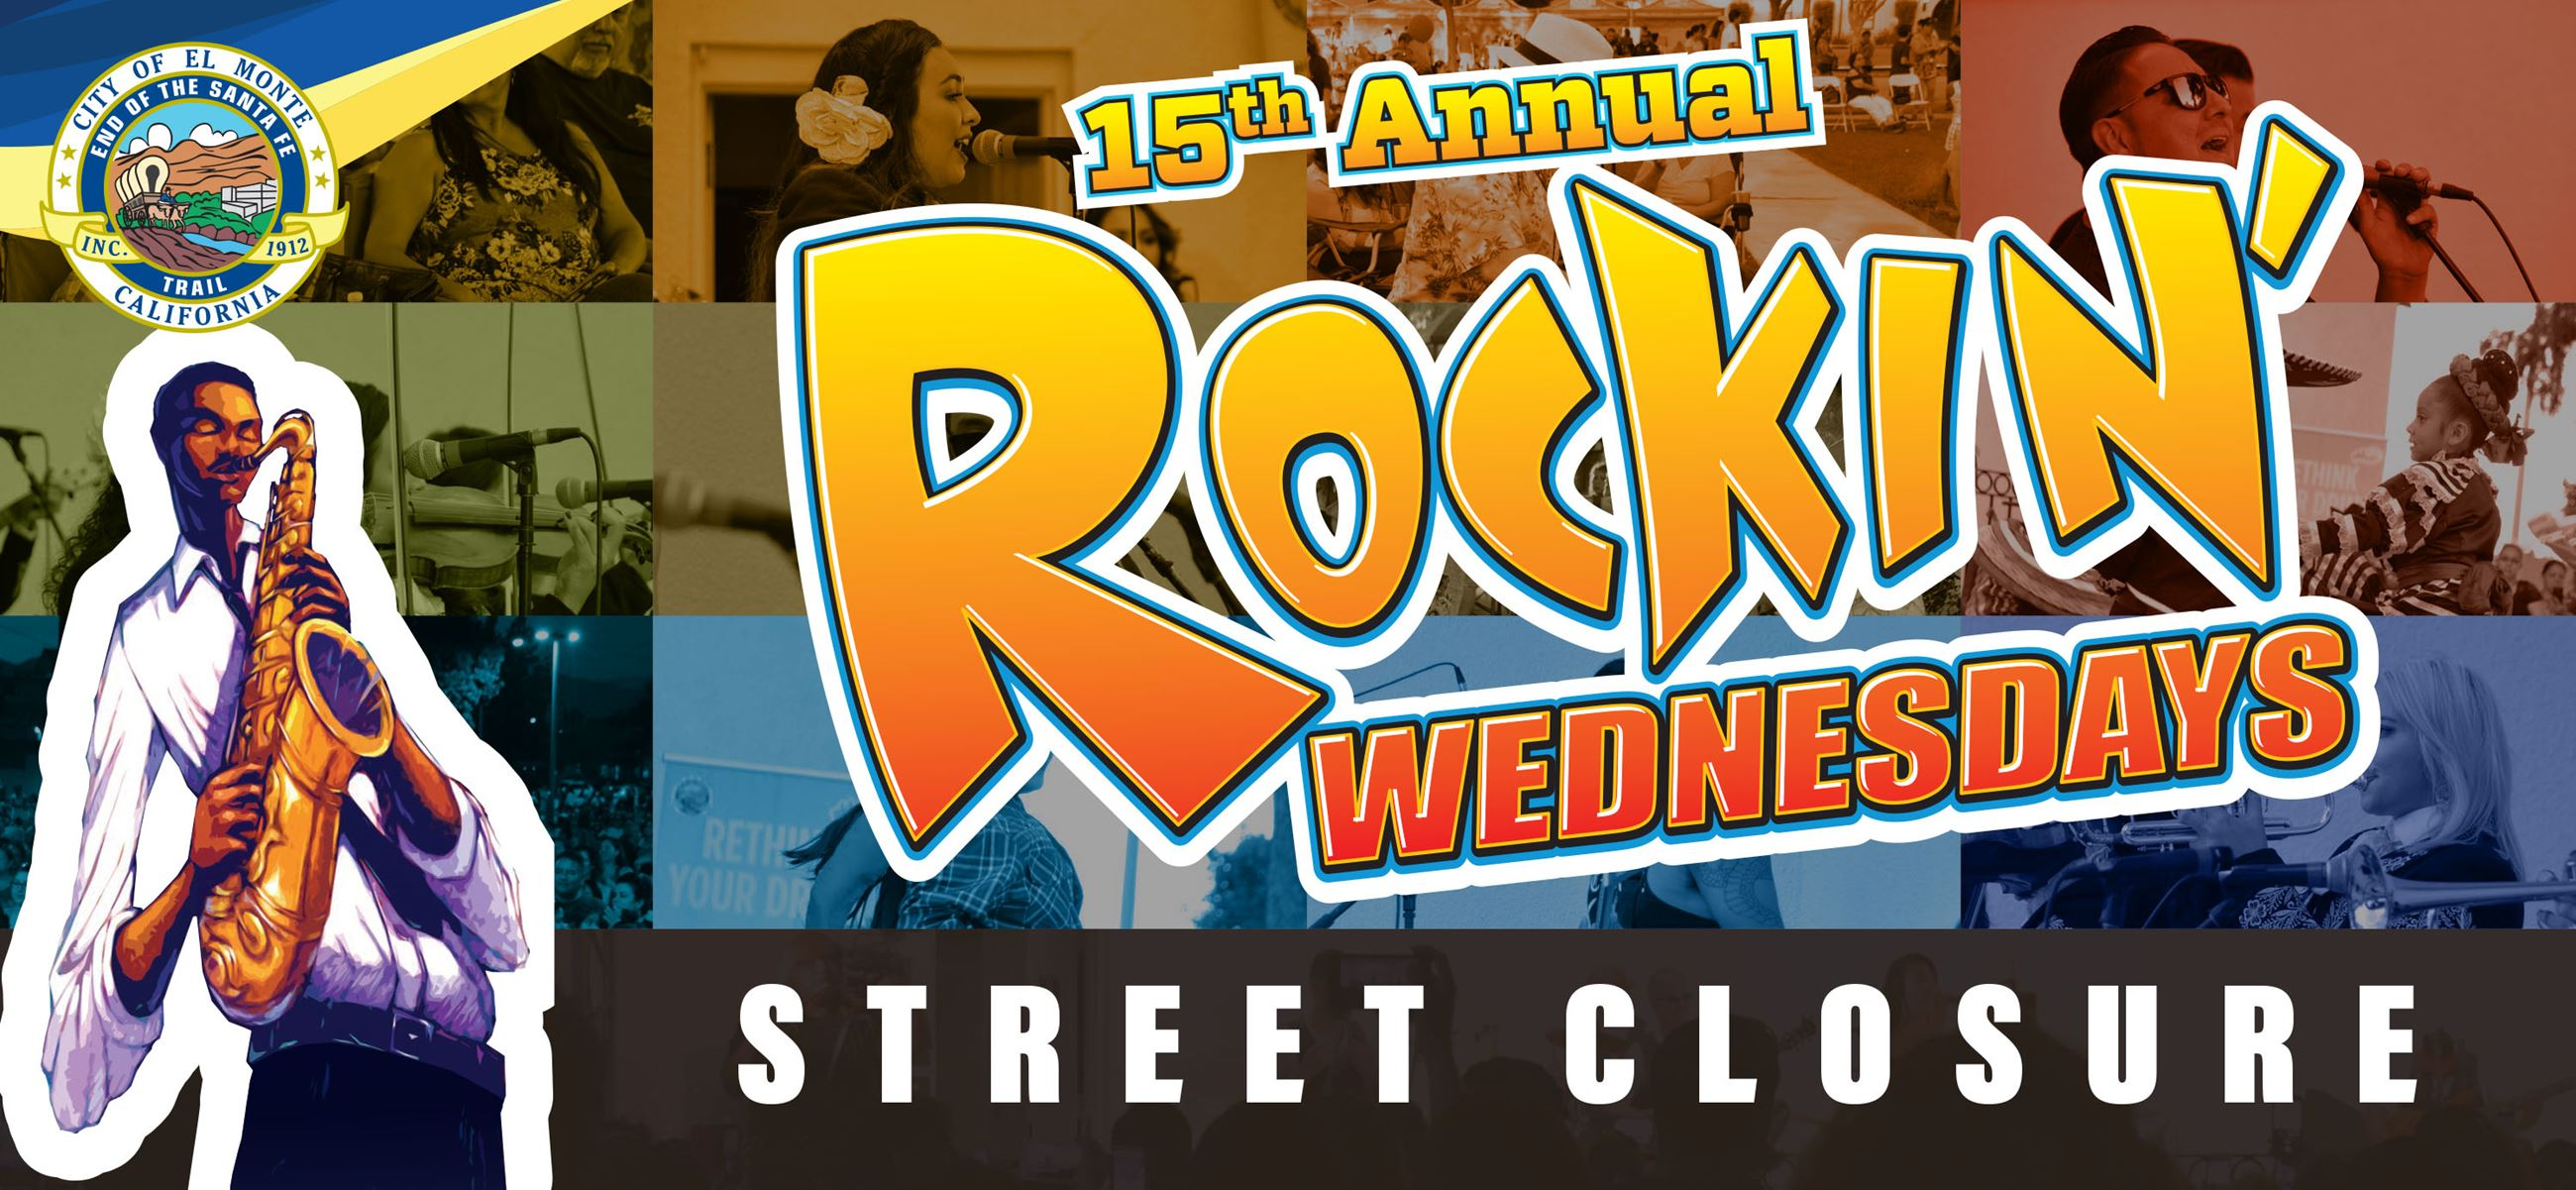 2018_Rockin Wednesdays Street Closure